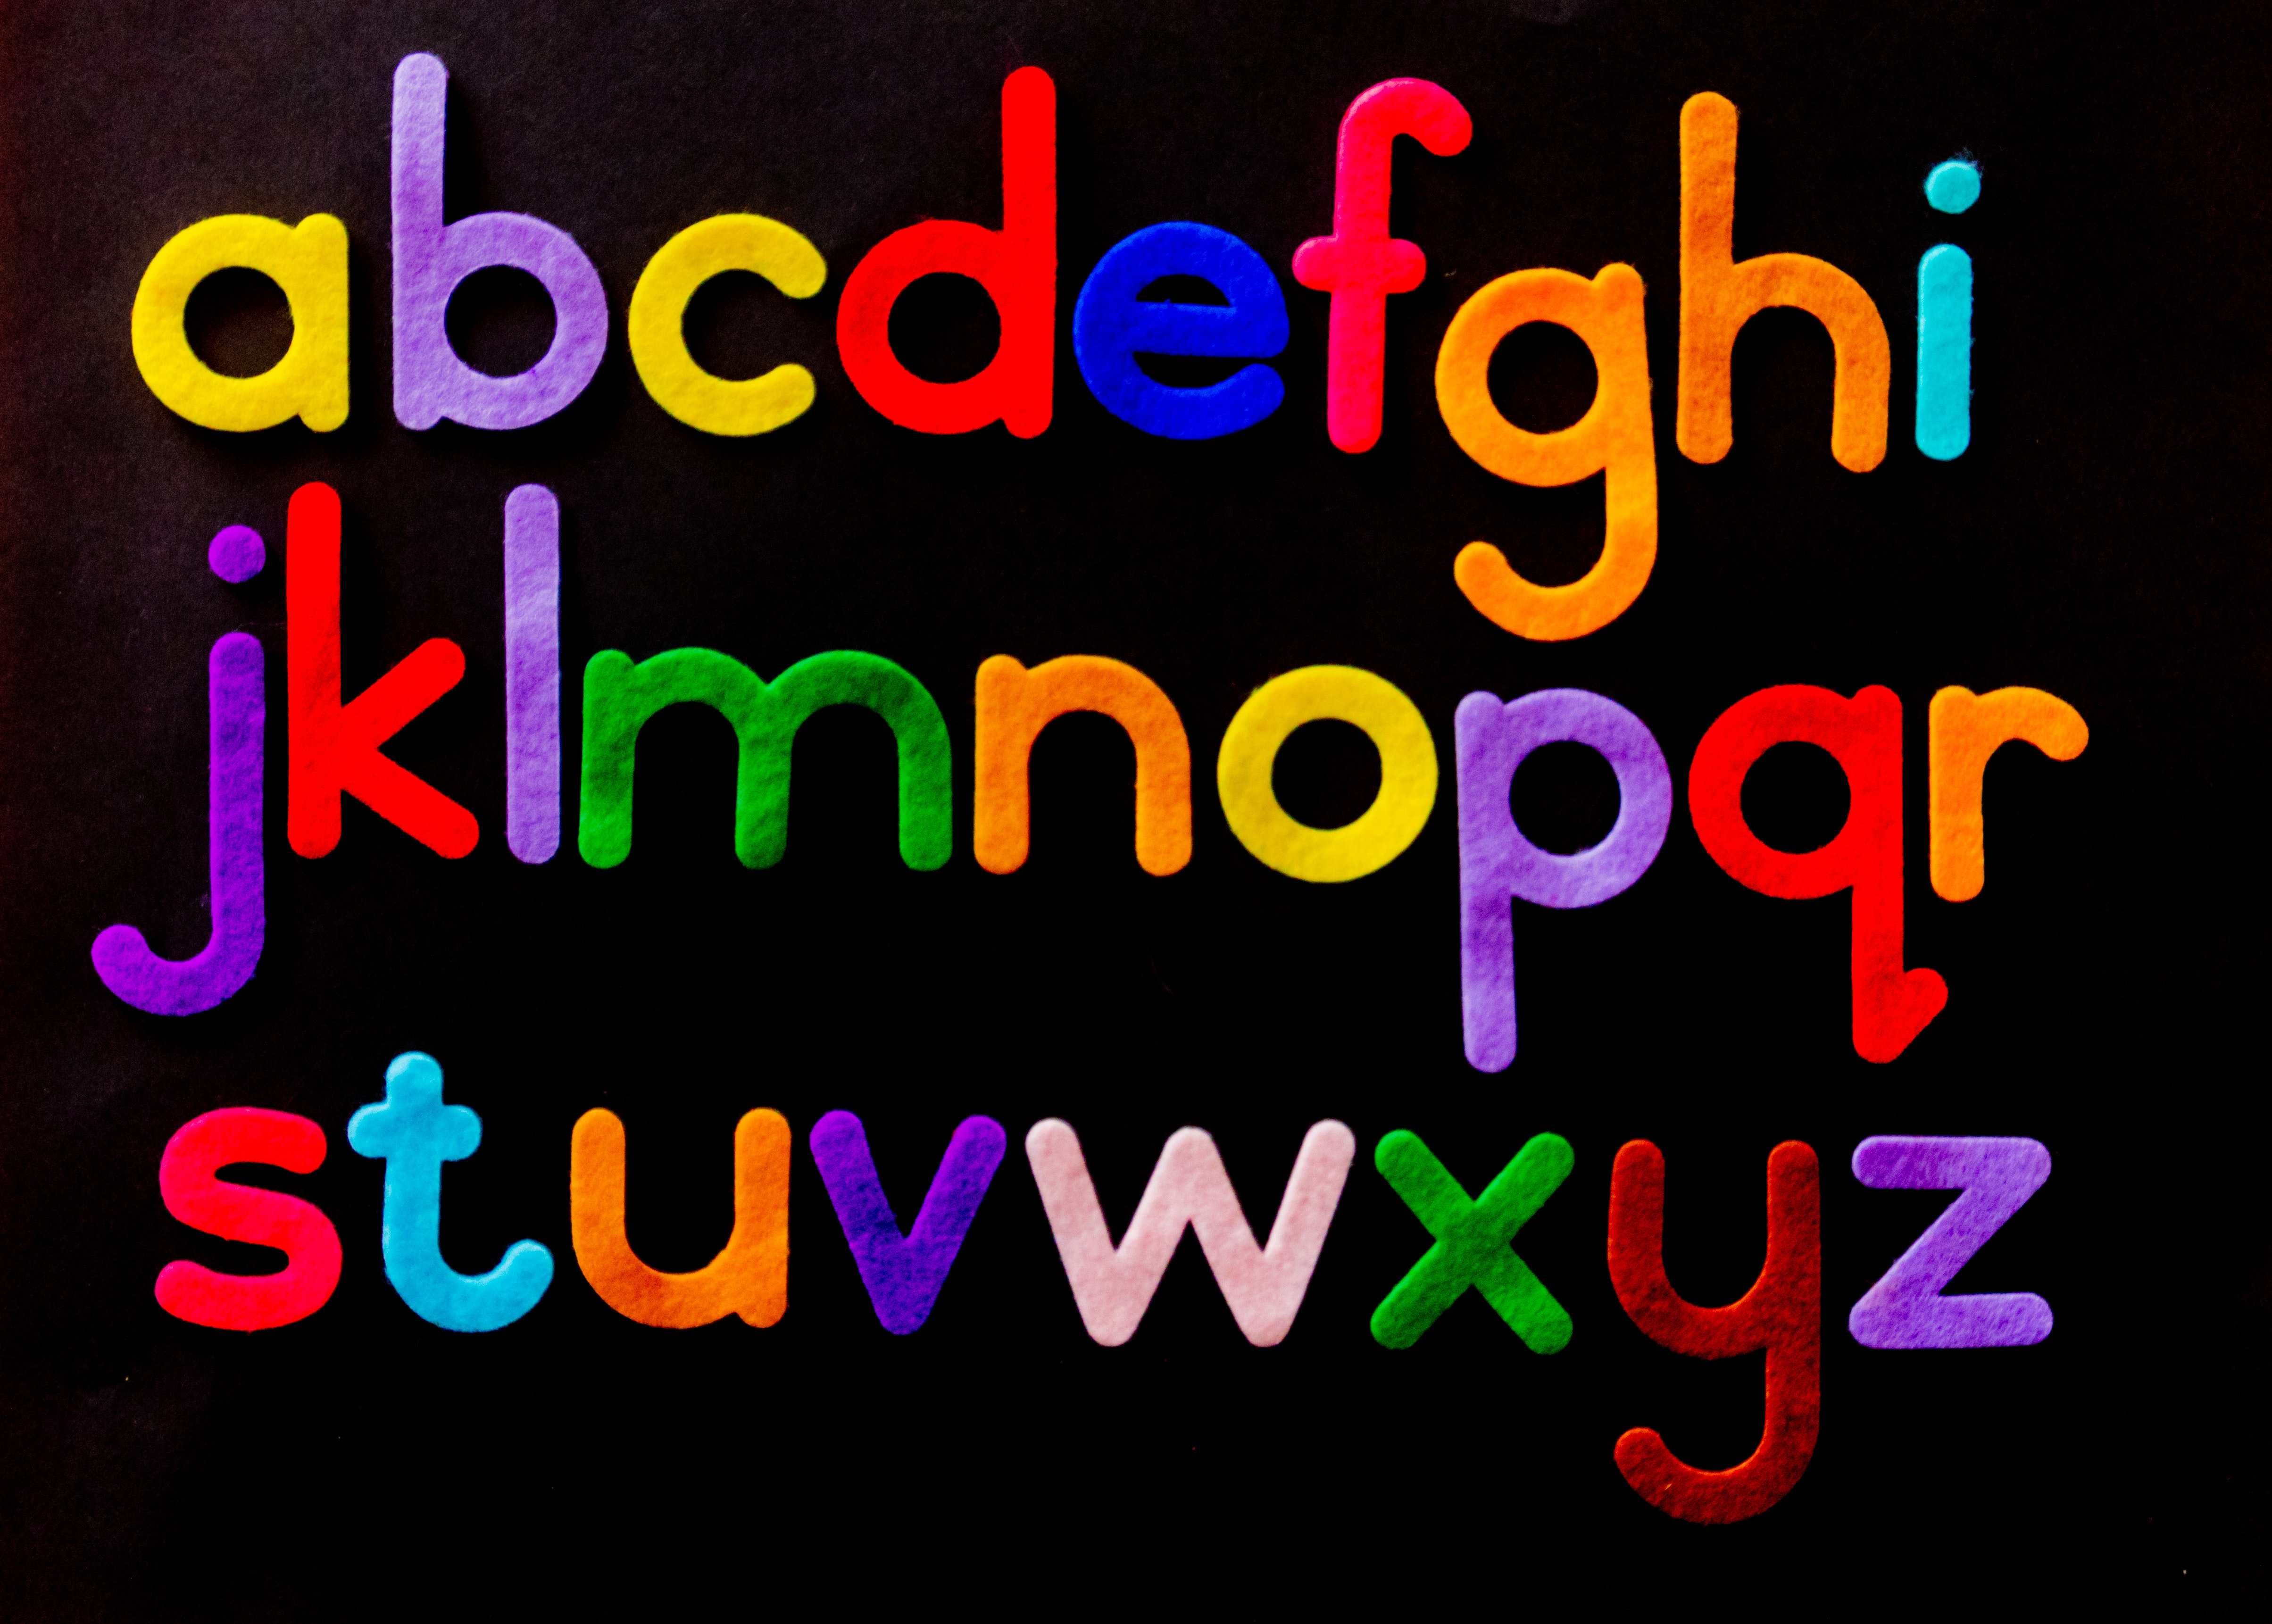 fonts are easy to read by the computer such as this alphabet's font